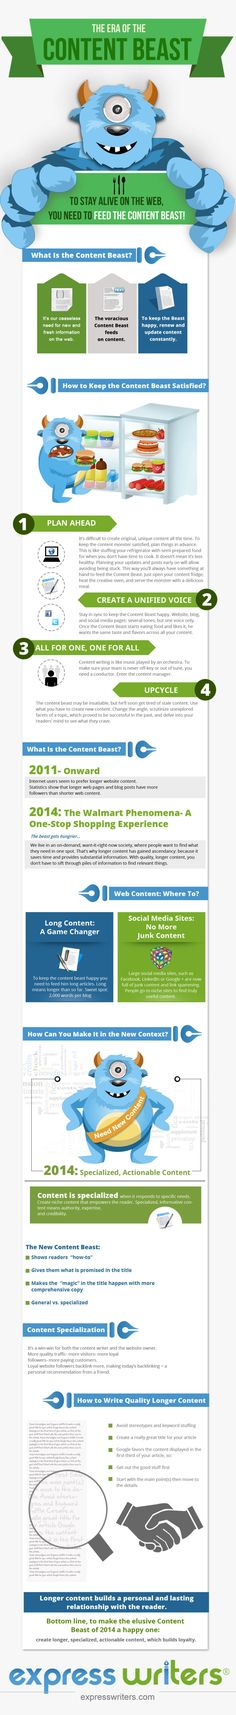 Era of the #Content #Beast #Infographic by @Express Writers